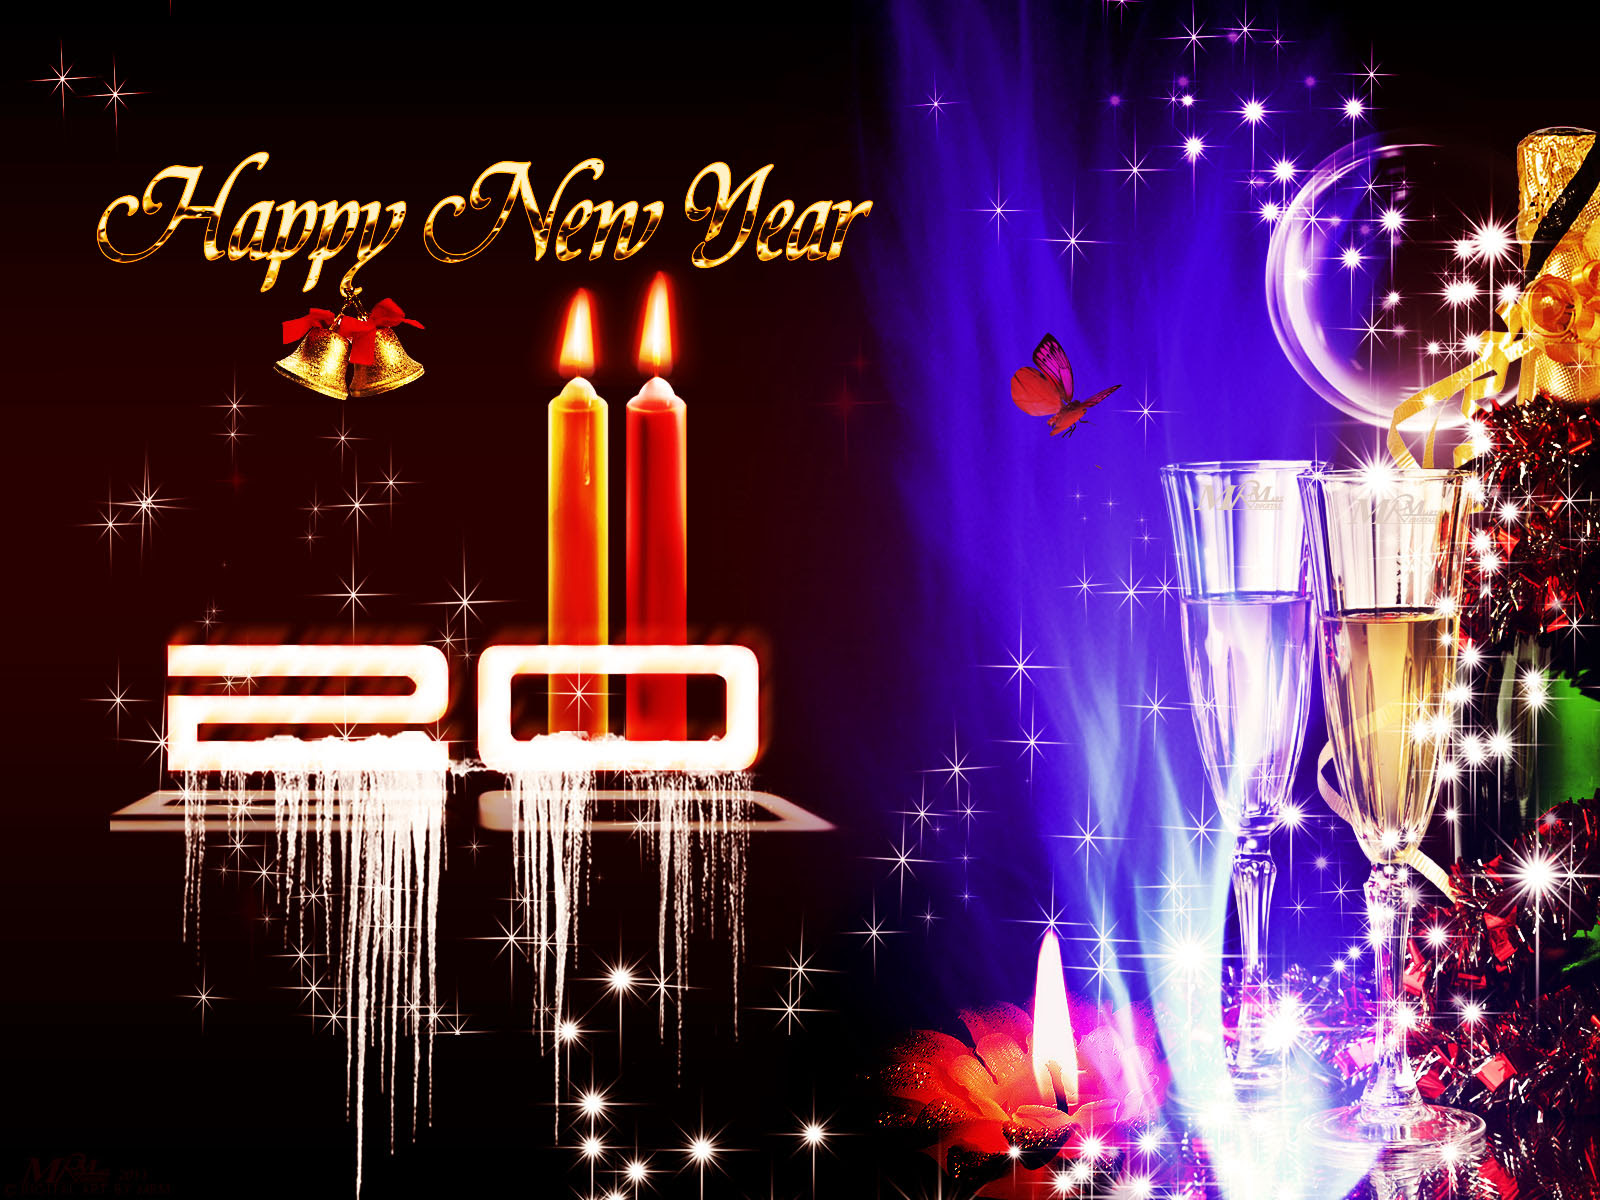 Happy New Year To All Good Morning Baghdad By The Bay